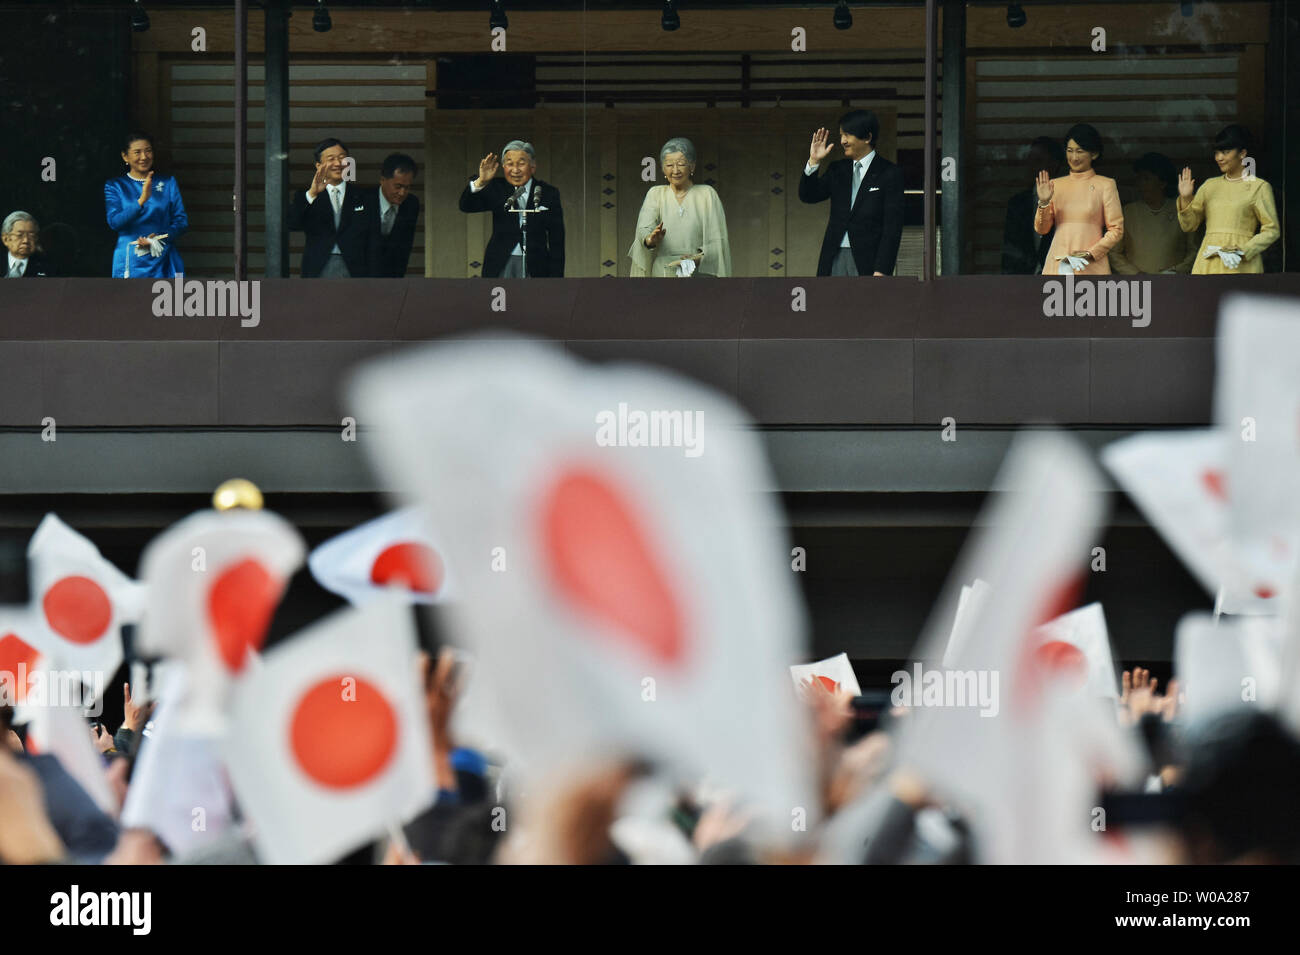 Japan's Emperor Akihito(L3) waves to well-wishers with Prince Hitachi(L), Empress Michiko(L5), Crown prince Naruhito(L3), Crown princess Masako(L2), Prince Akishino (R3), his wife Princess Kiko(R2) and Princess  Mako(R) during a new year greeting at the East Plaza, Imperial Palace in Tokyo, Japan, on January 2, 2017.     Photo by Keizo Mori/UPI - Stock Image